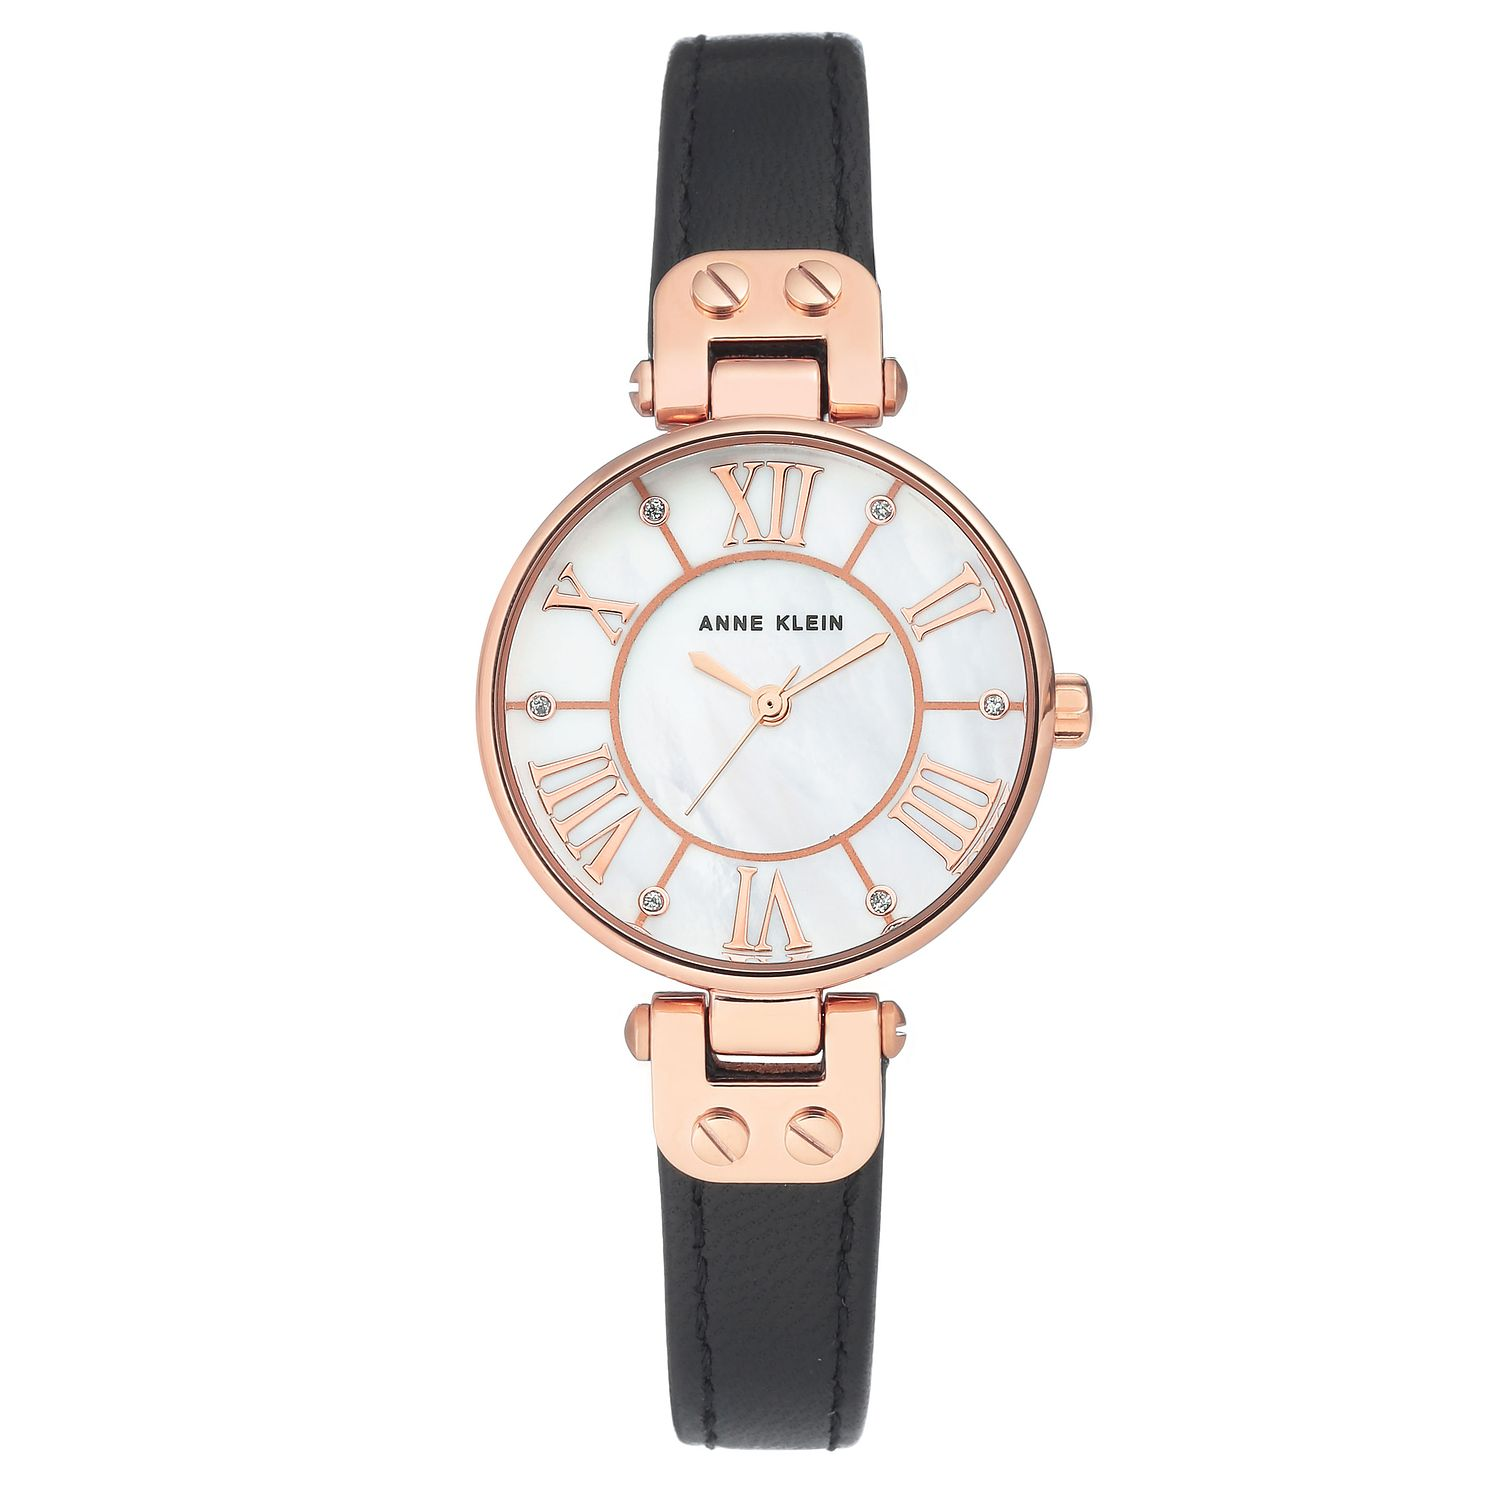 Anne Klein Ladies' Rose Gold Black Leather Strap Watch. - Product number 9790837